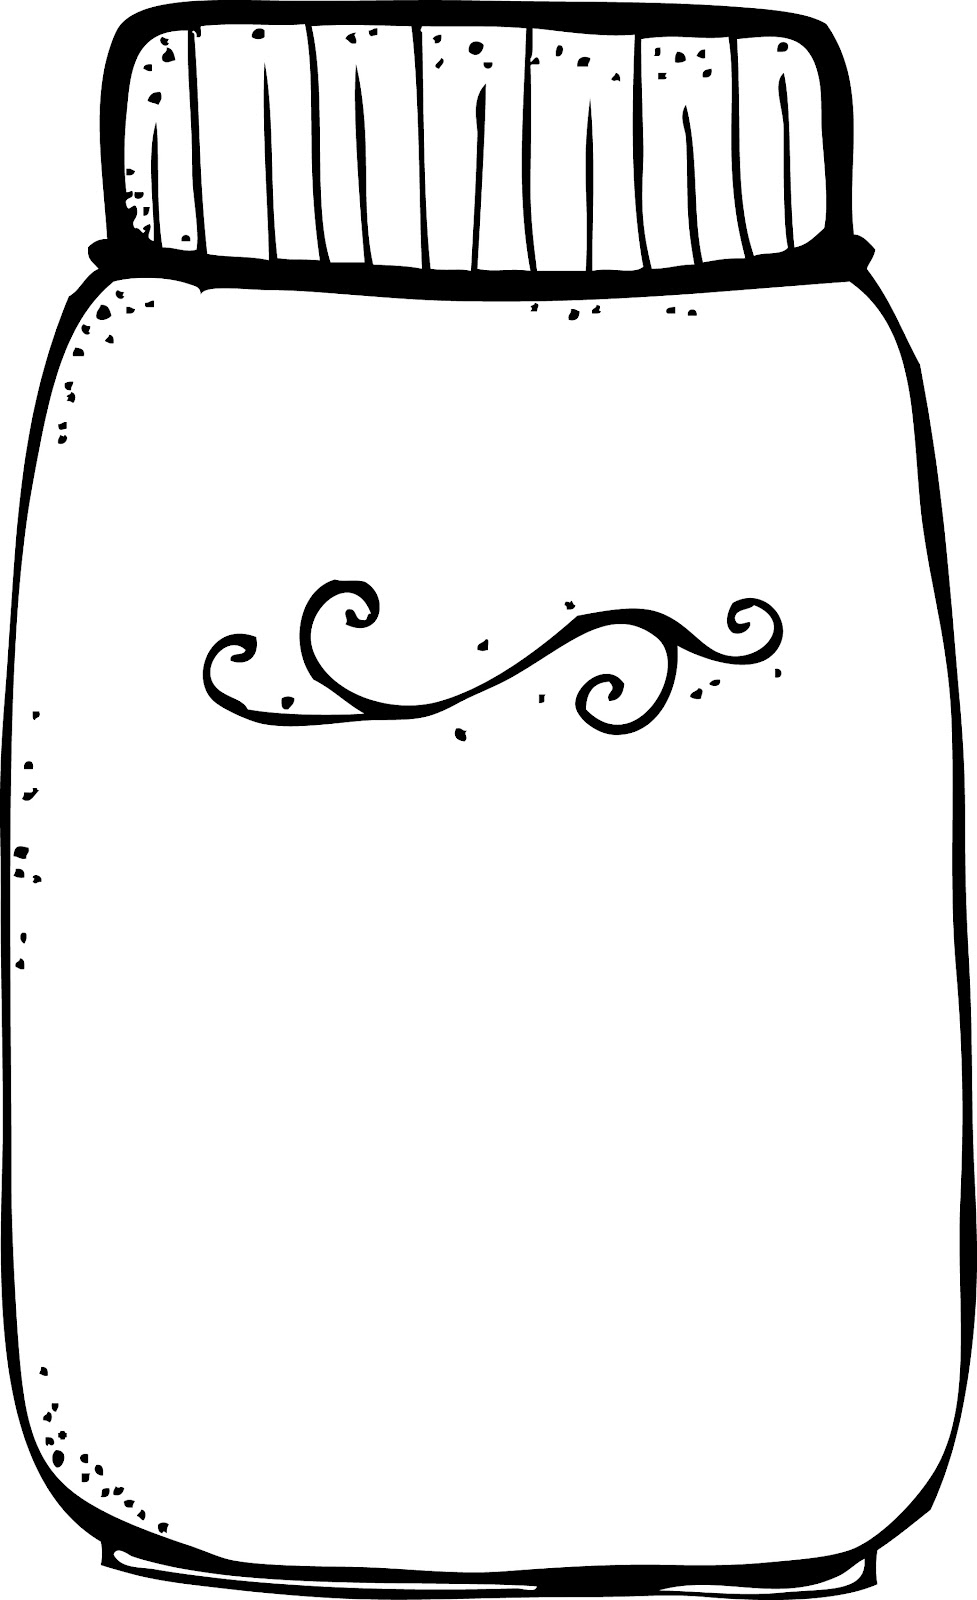 Cookie jar clipart free download clip art on 2